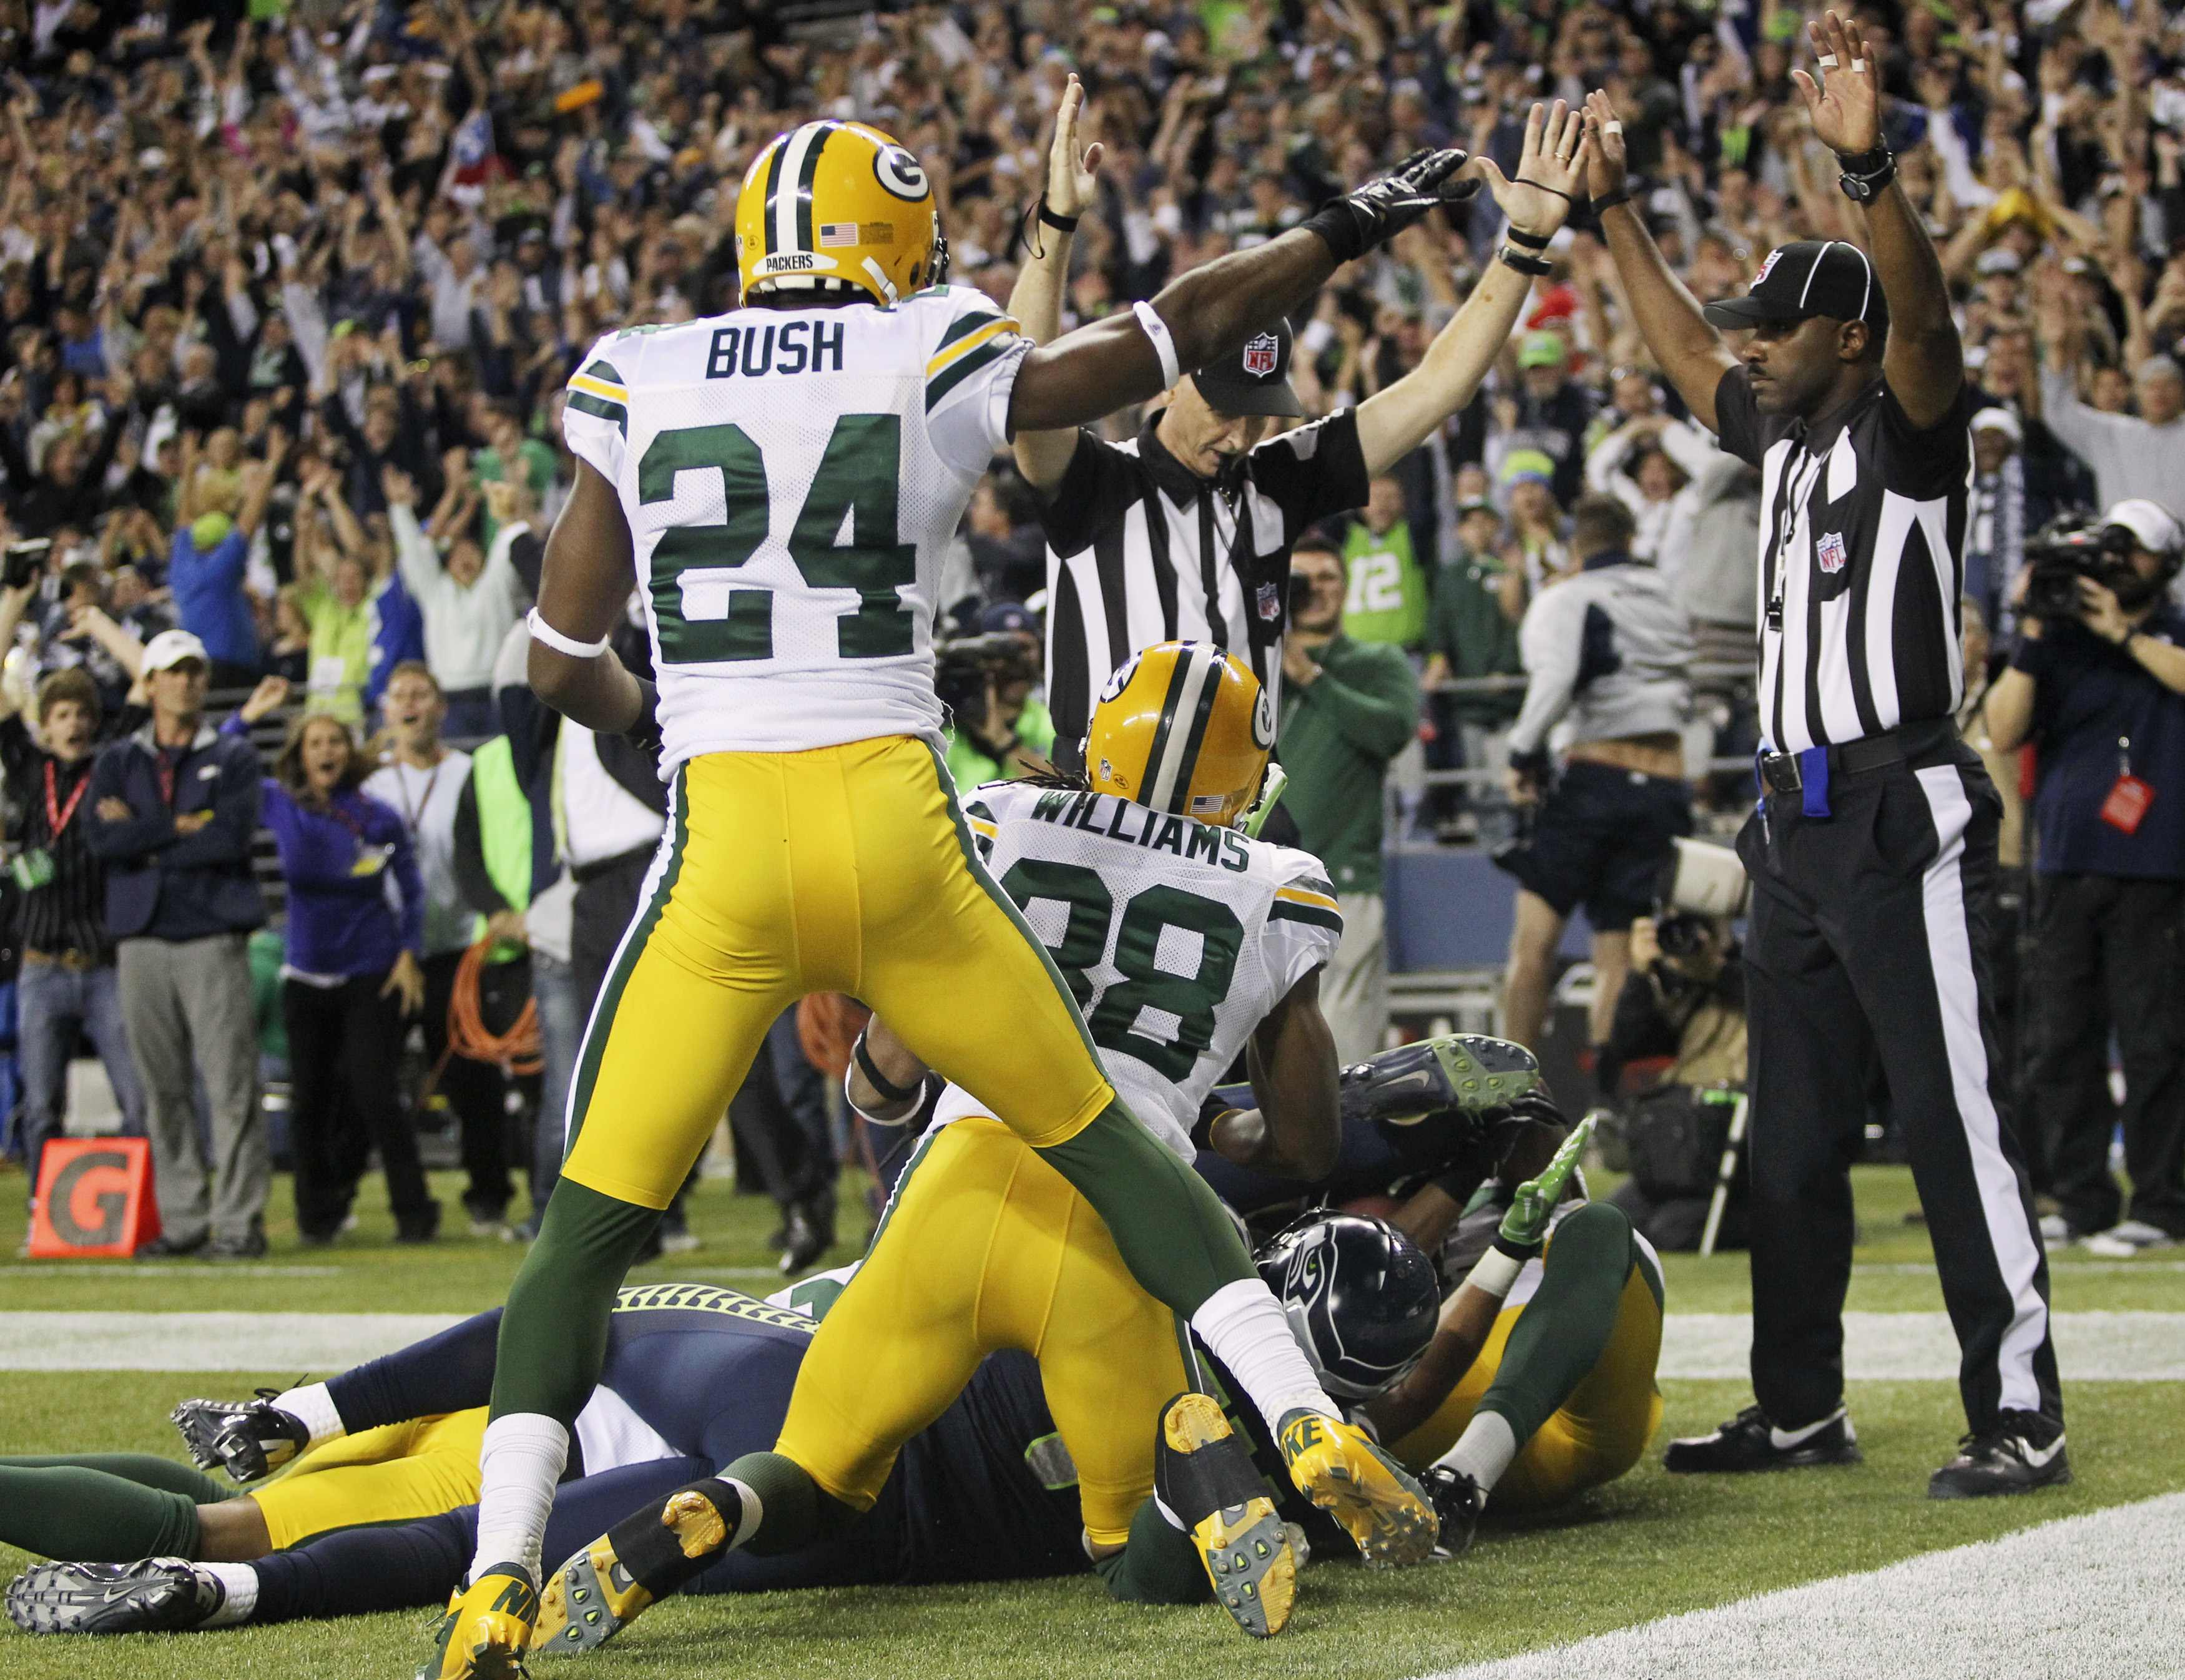 Golden Tate (obscured) catches the game-winning touchdown. (Reuters)